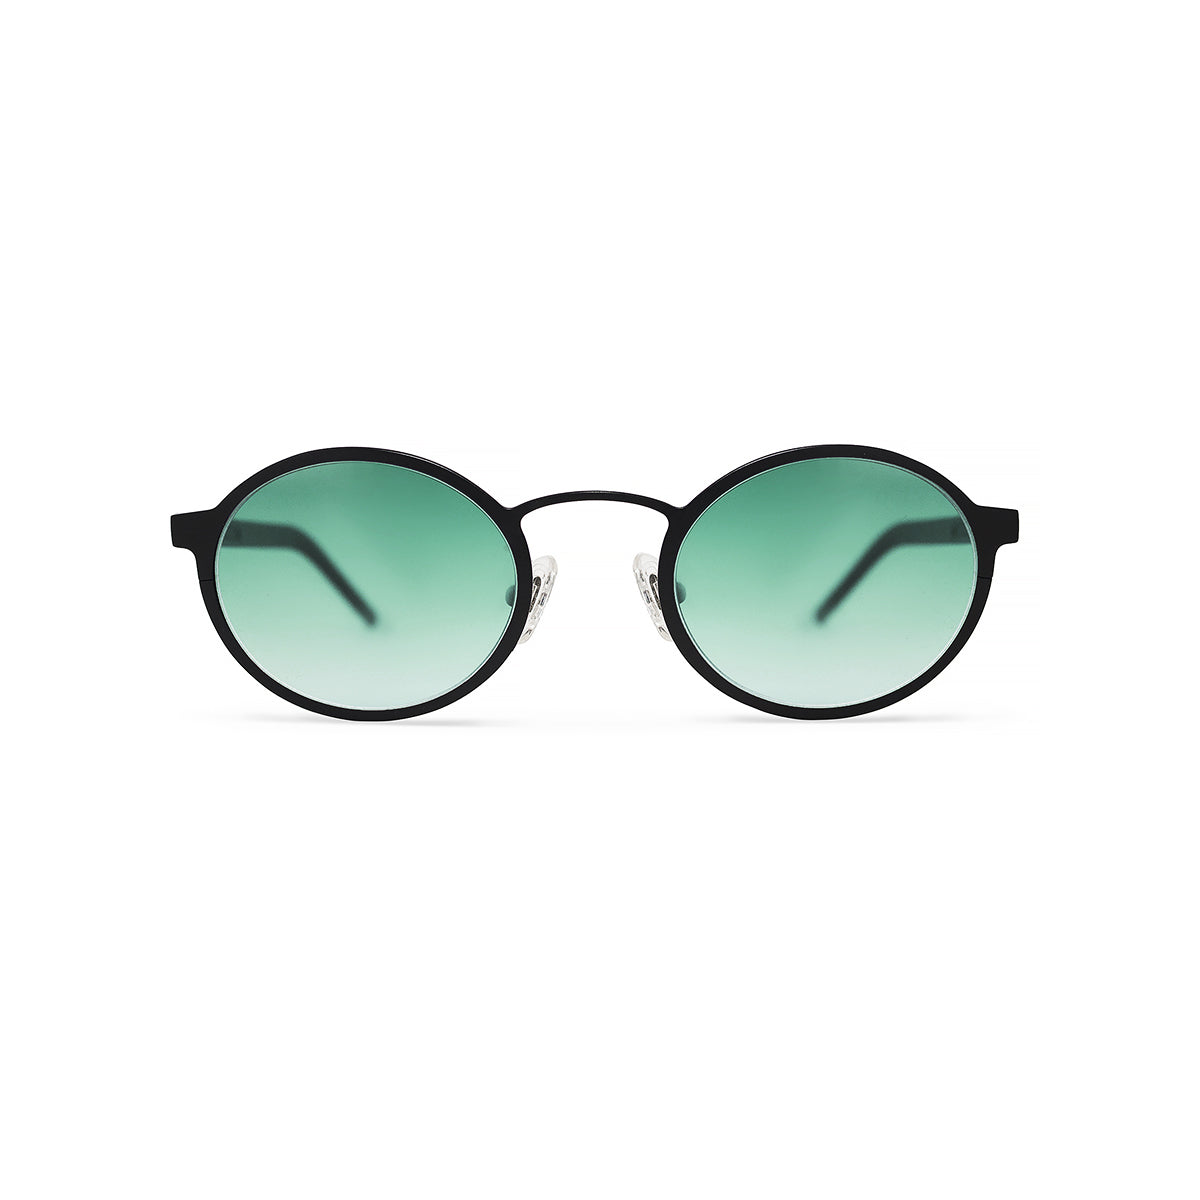 Metal. Matte Black. Jade Lens. - BLYSZAK eyewear eyewear - eyewear, optical, sunglasses